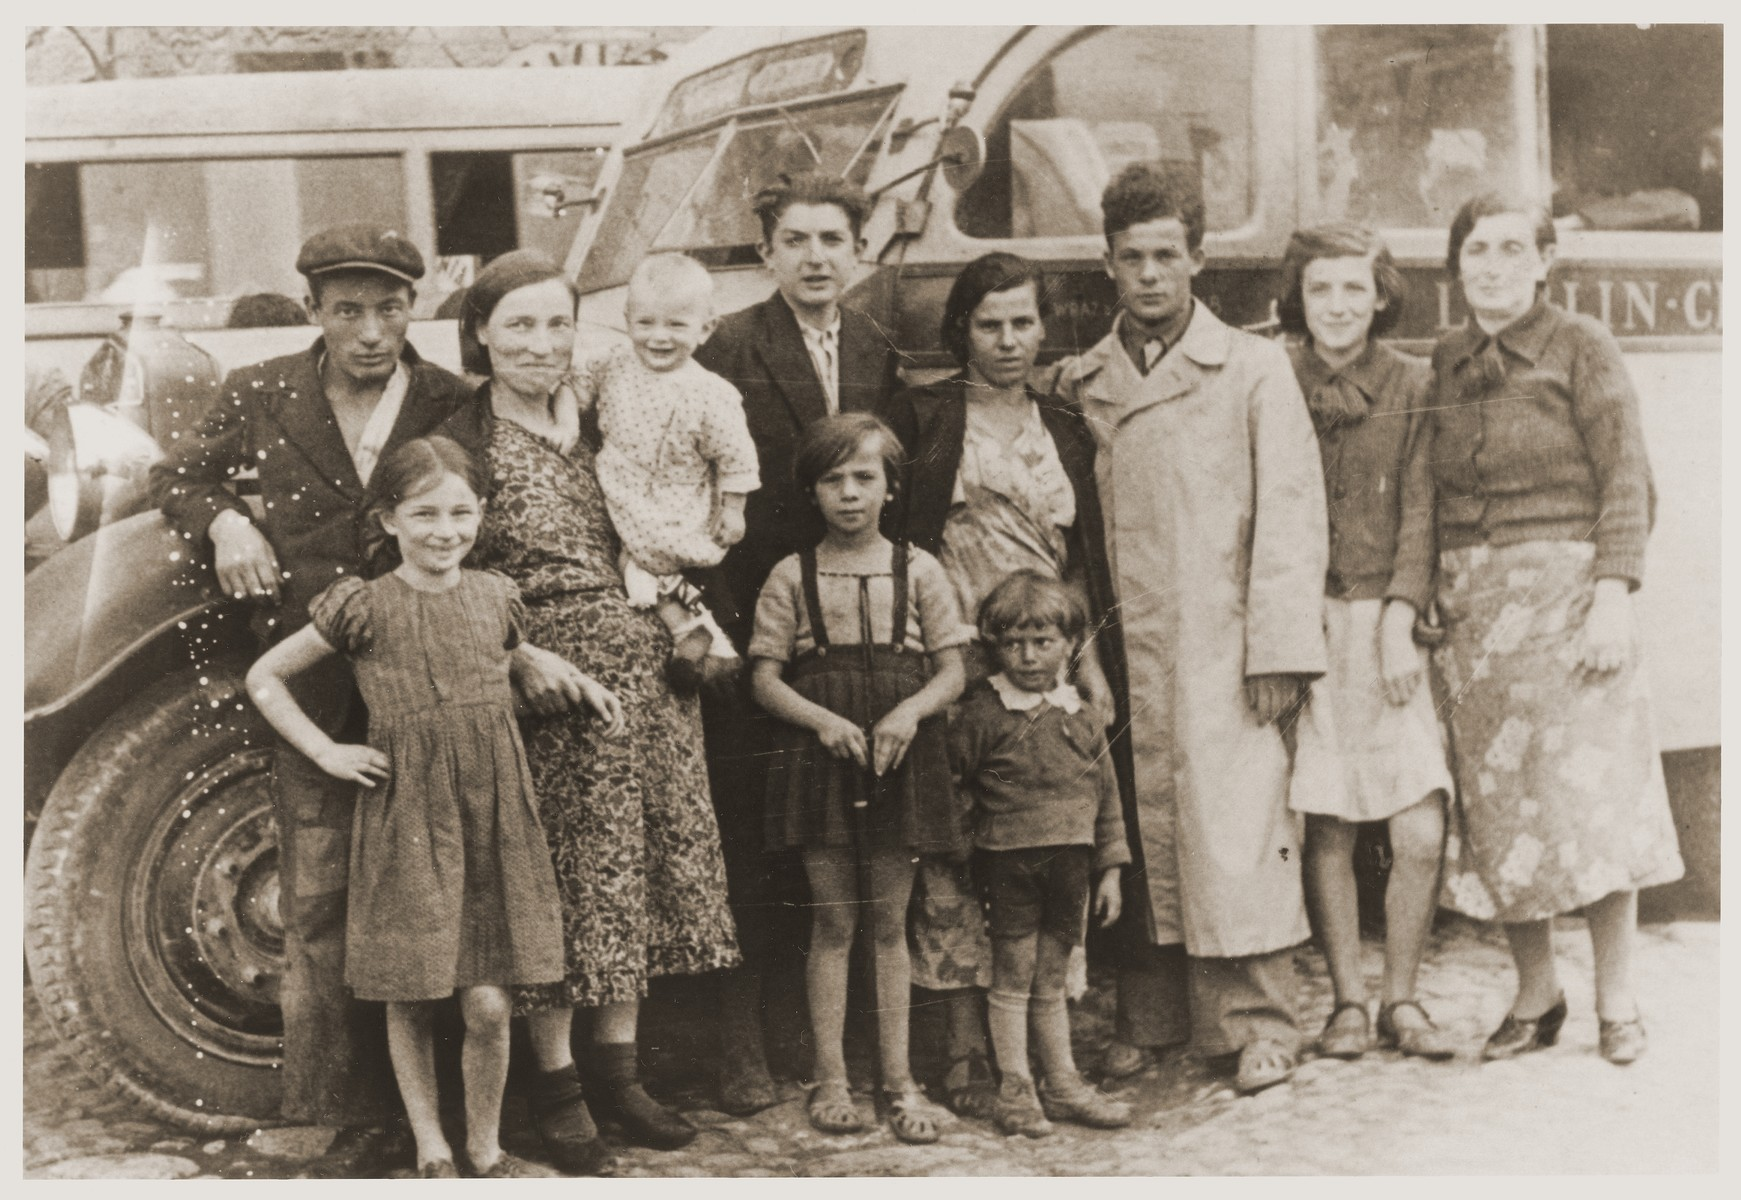 Members of the Tuchsznajder family pose in front of a bus during a vacation in Kazimierz.